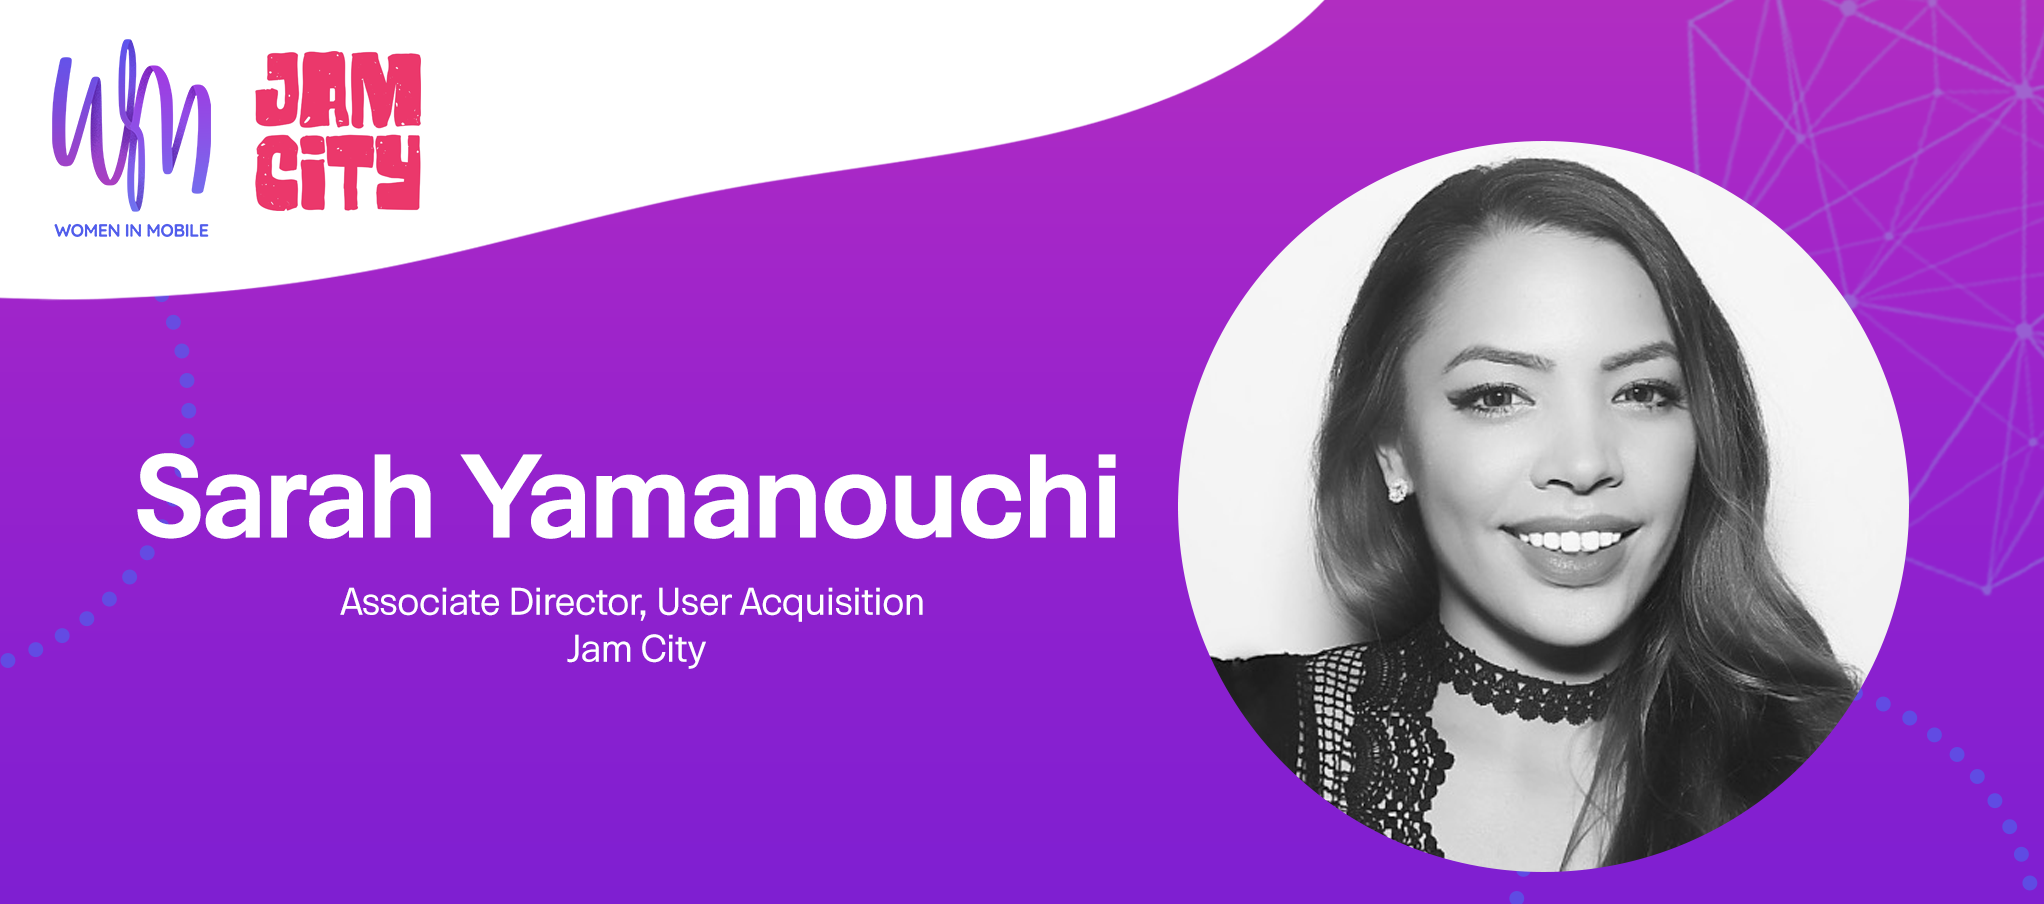 Sarah Yamanouchi, Associate Director, User Acquisition at Jam City at Aarki's Women in Mobile series